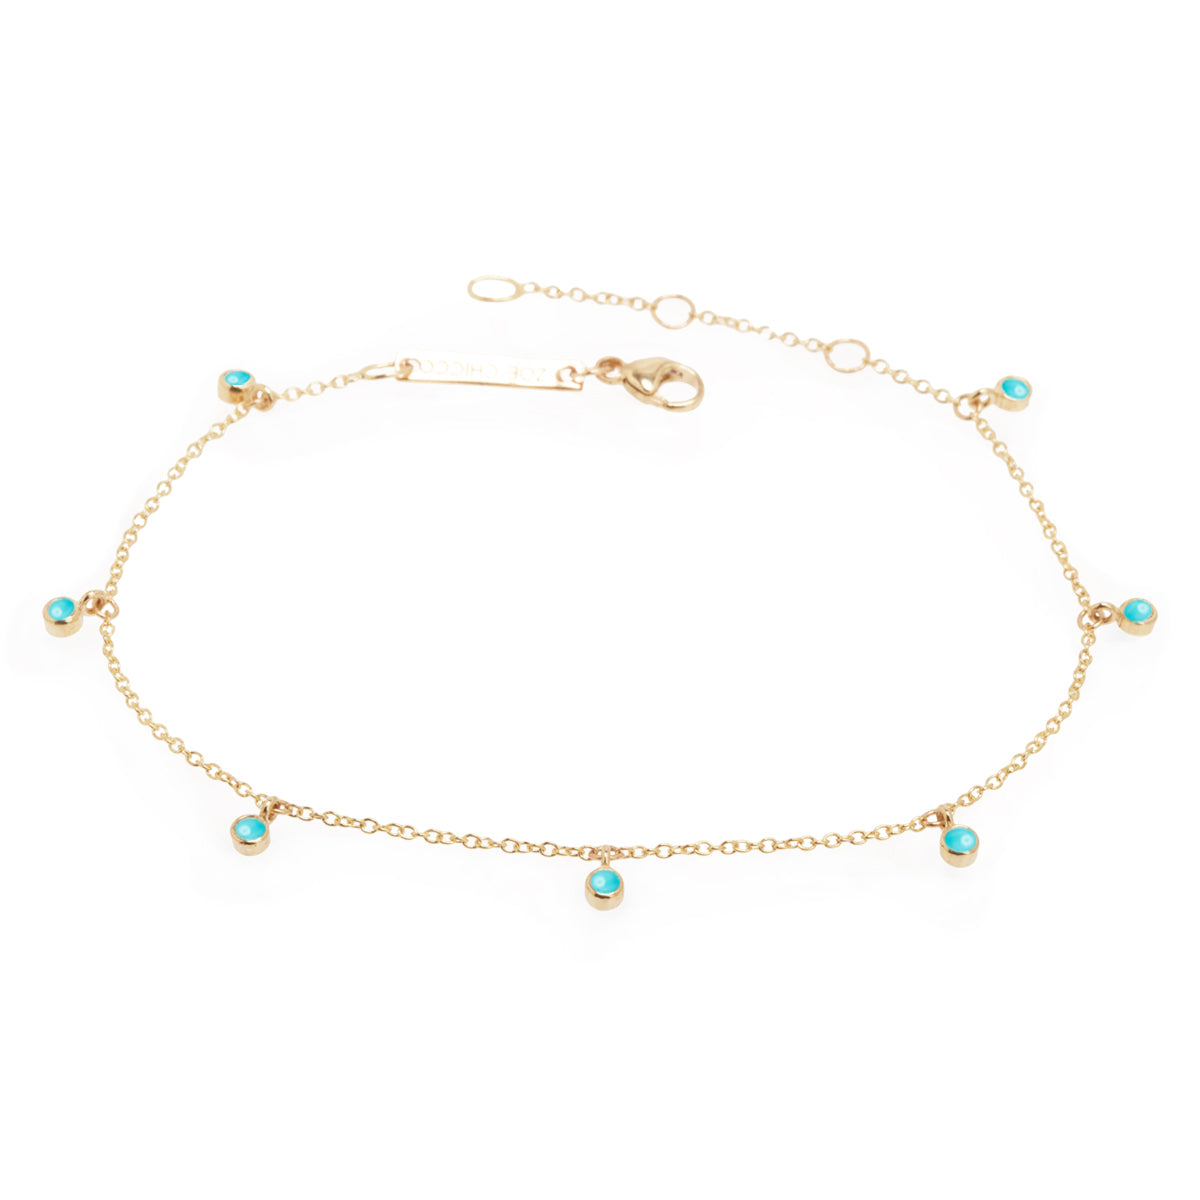 14k 7 dangling turquoise stones anklet